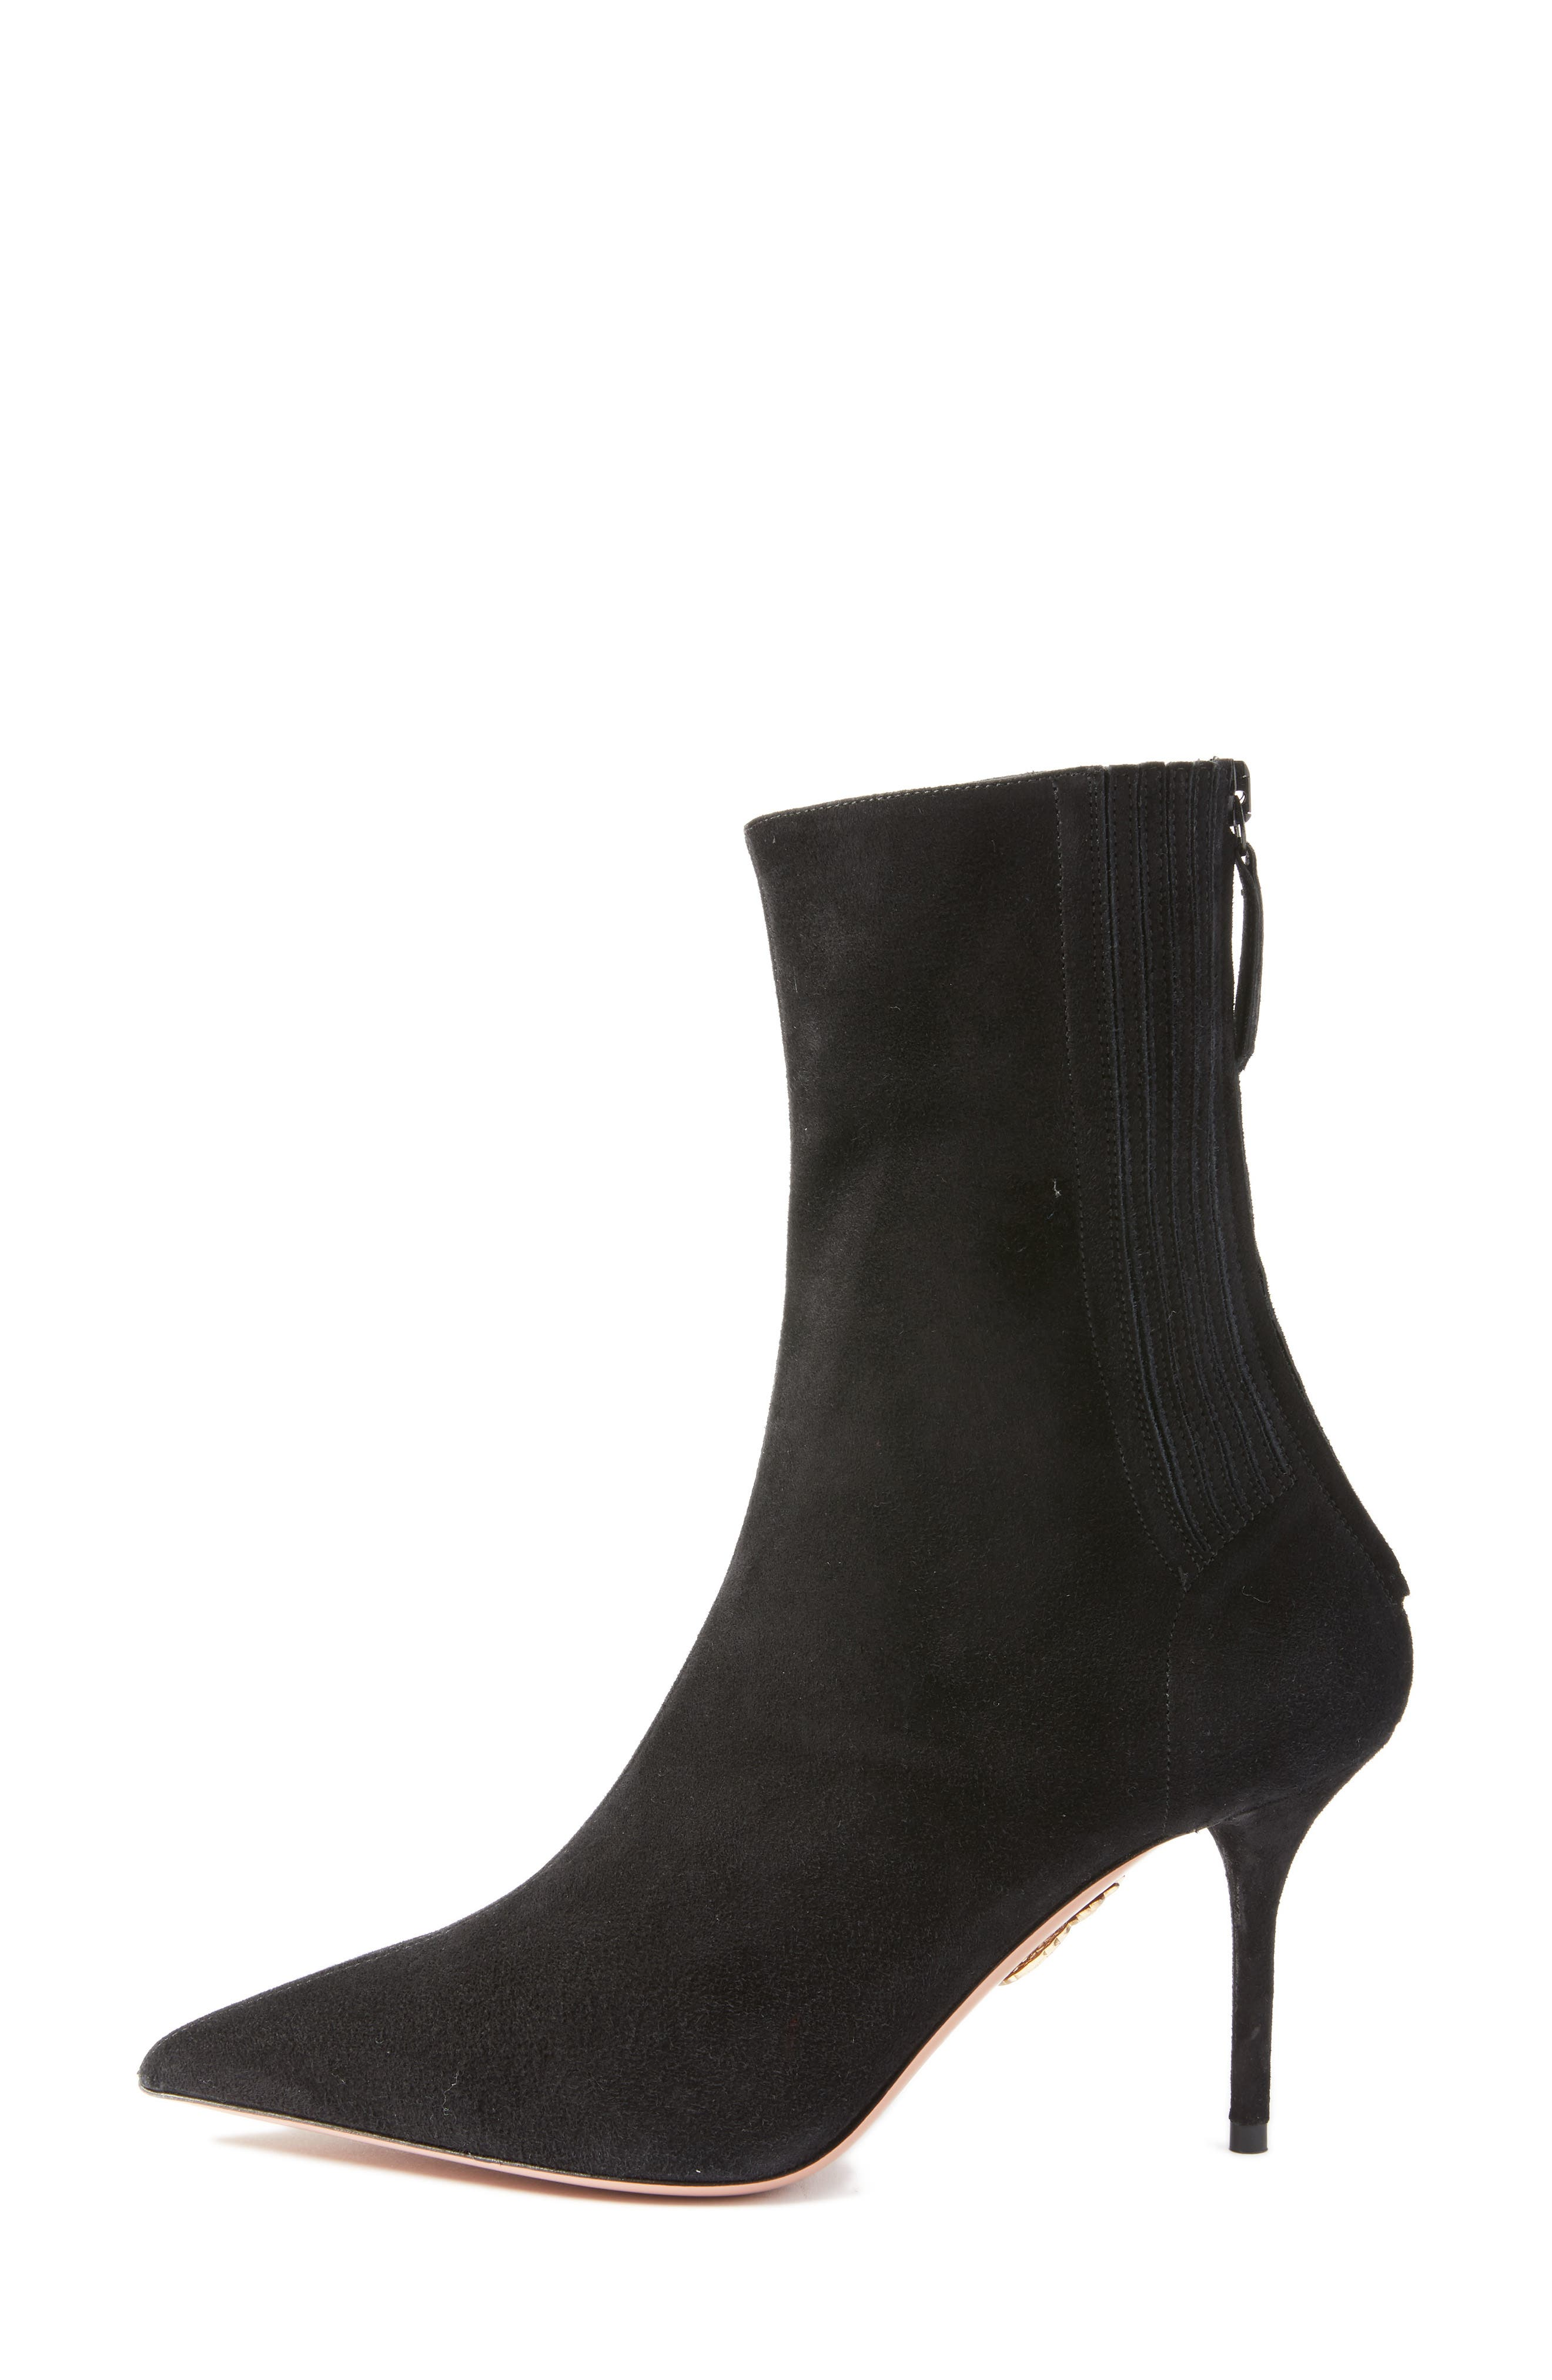 Saint Honore Pointy Toe Bootie,                             Alternate thumbnail 3, color,                             001